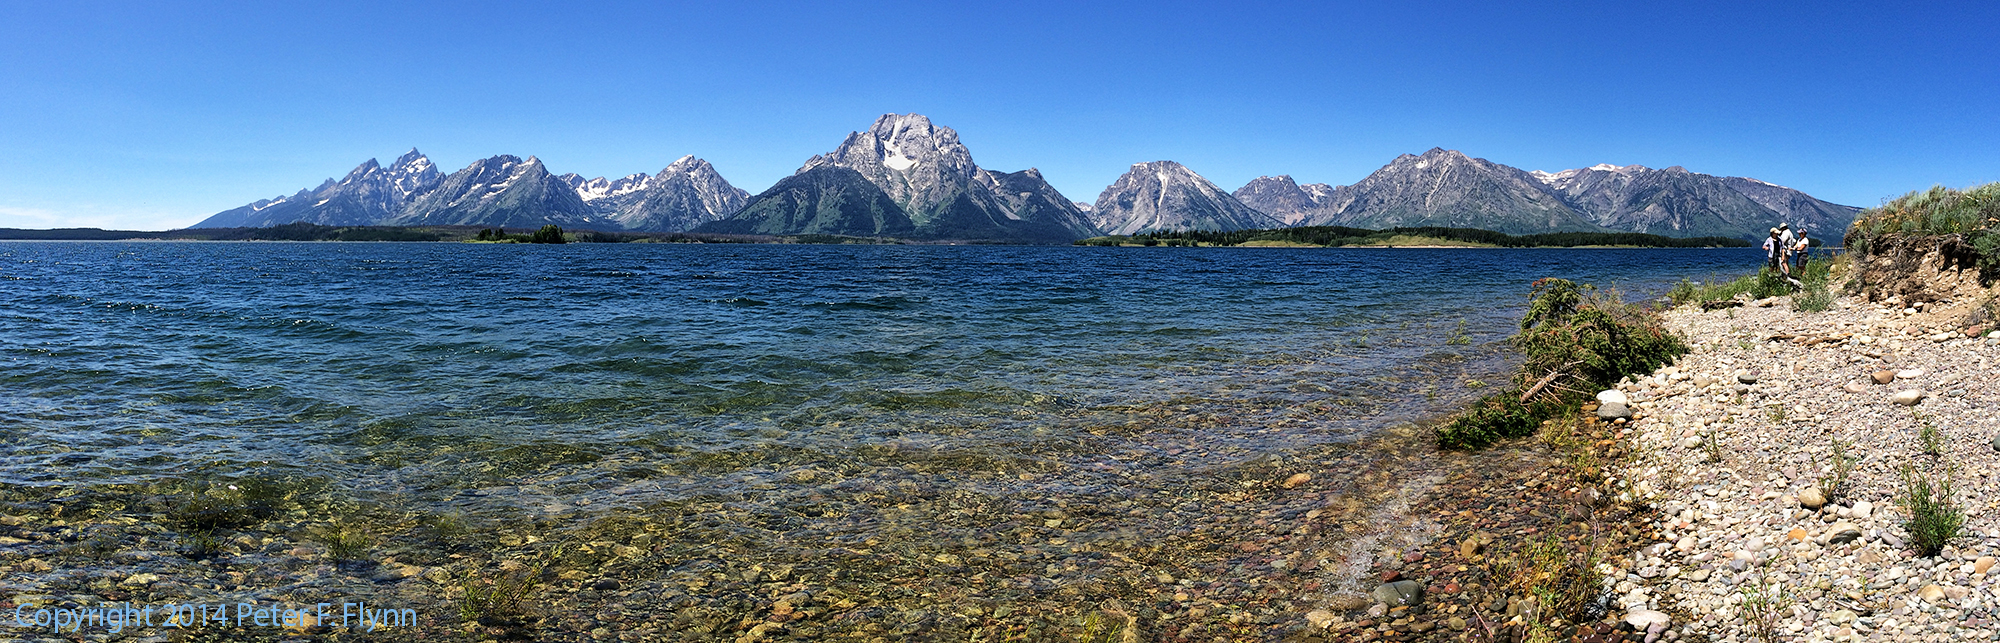 Hermitage Point Trail, Grand Teton National Park